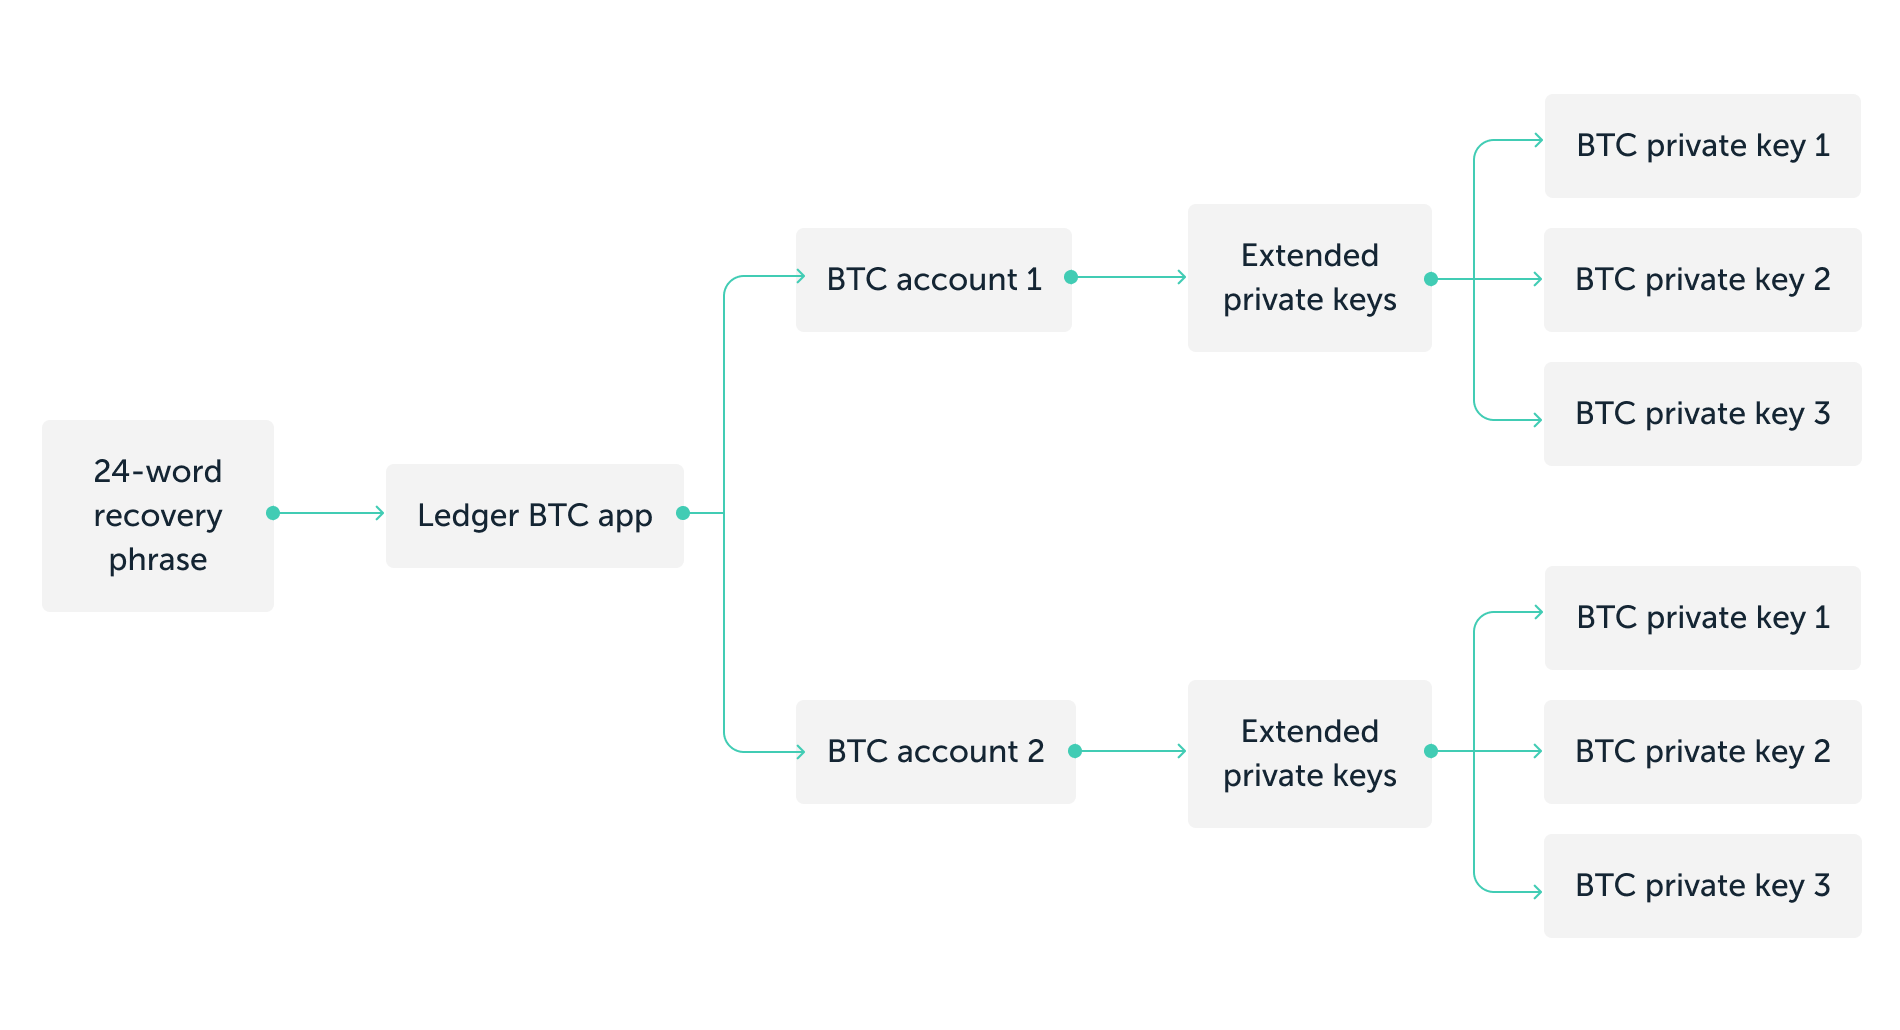 Bitcoin extended private key